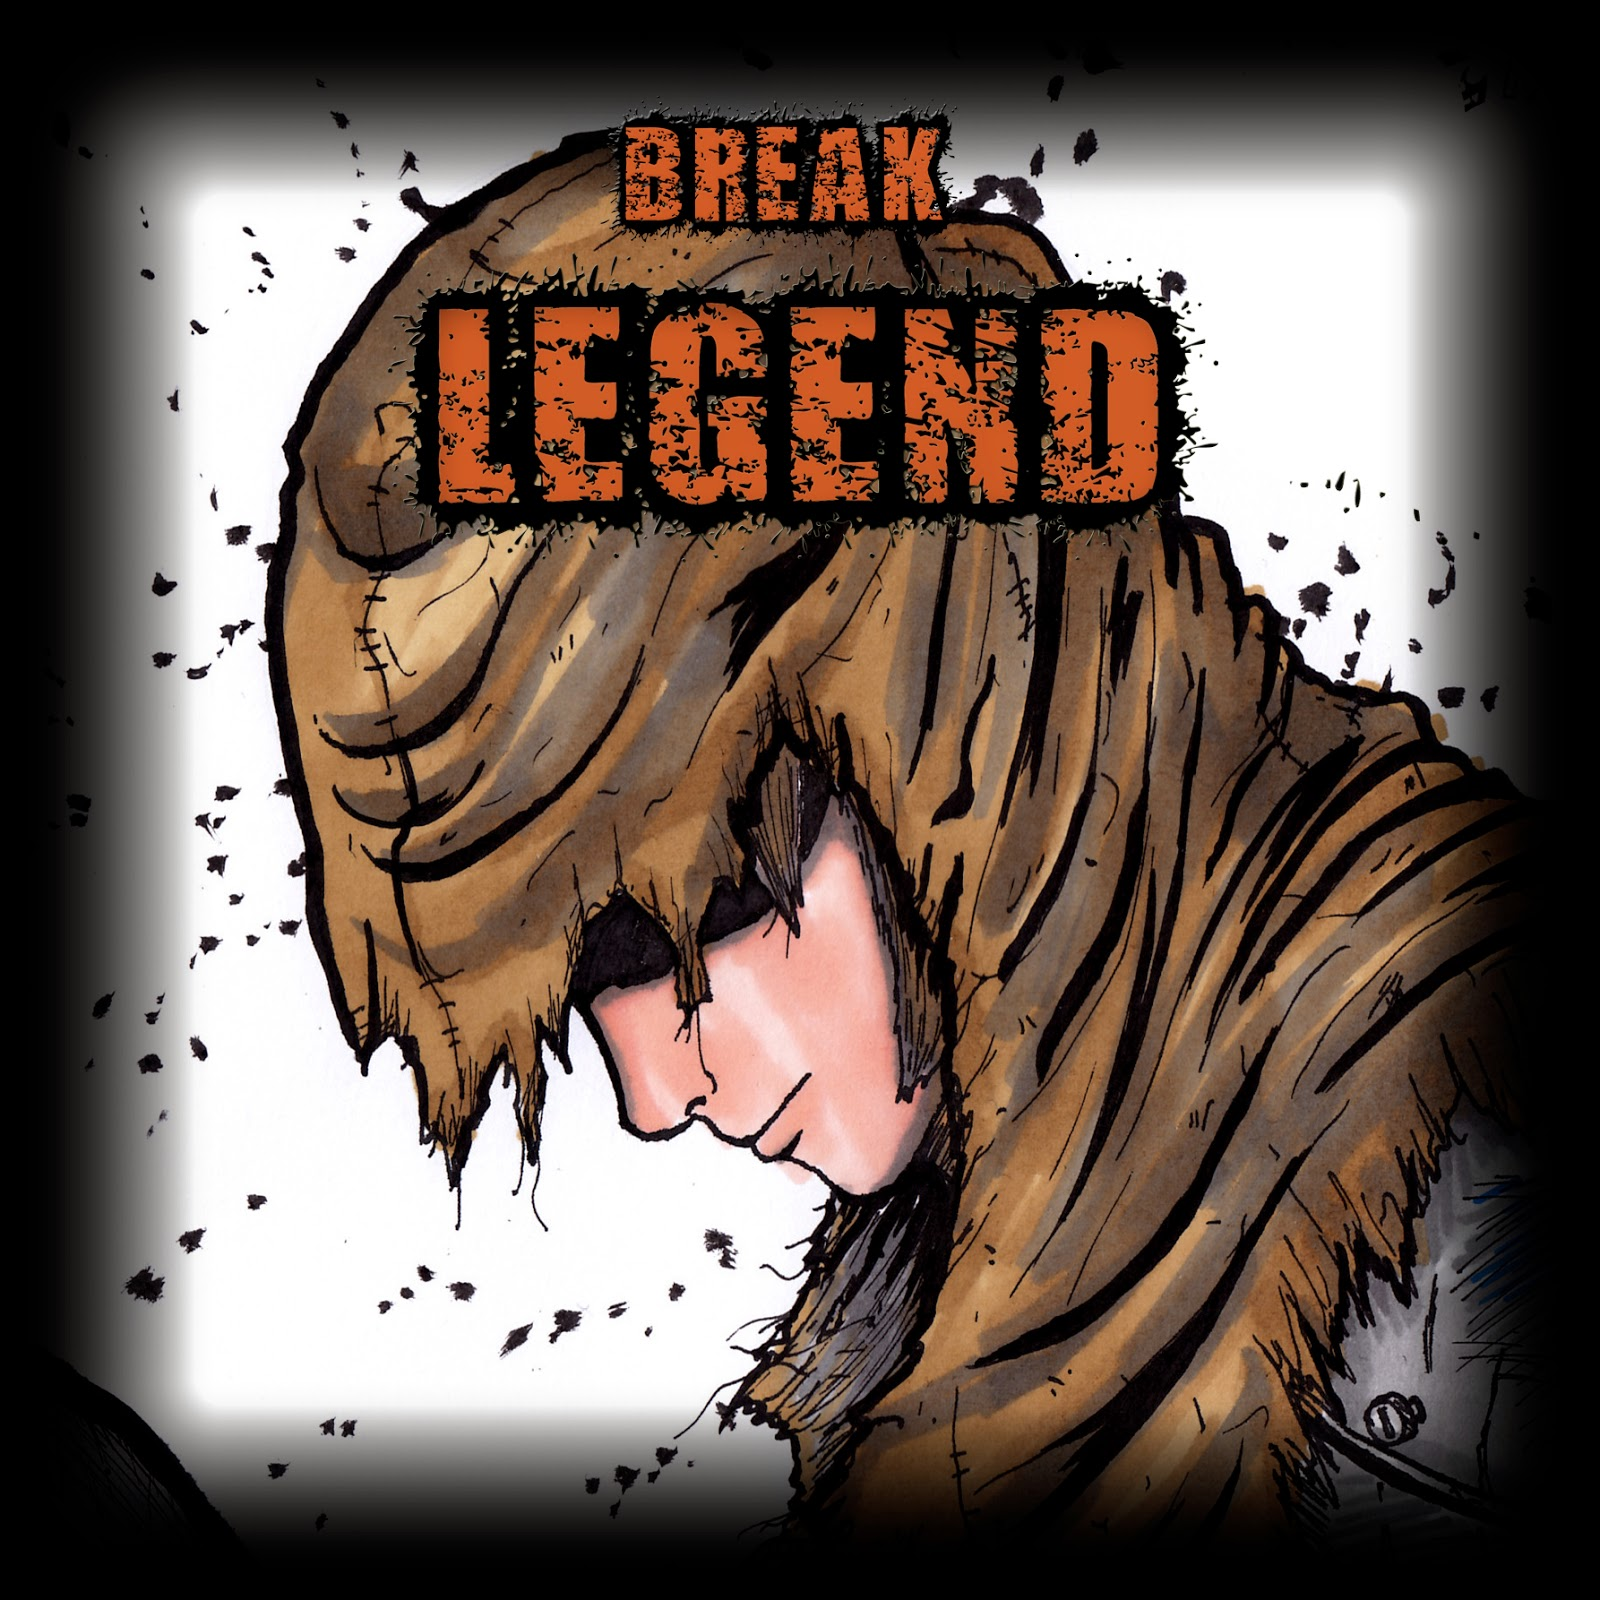 http://luisocs-comics.blogspot.com.es/p/break-legend.html